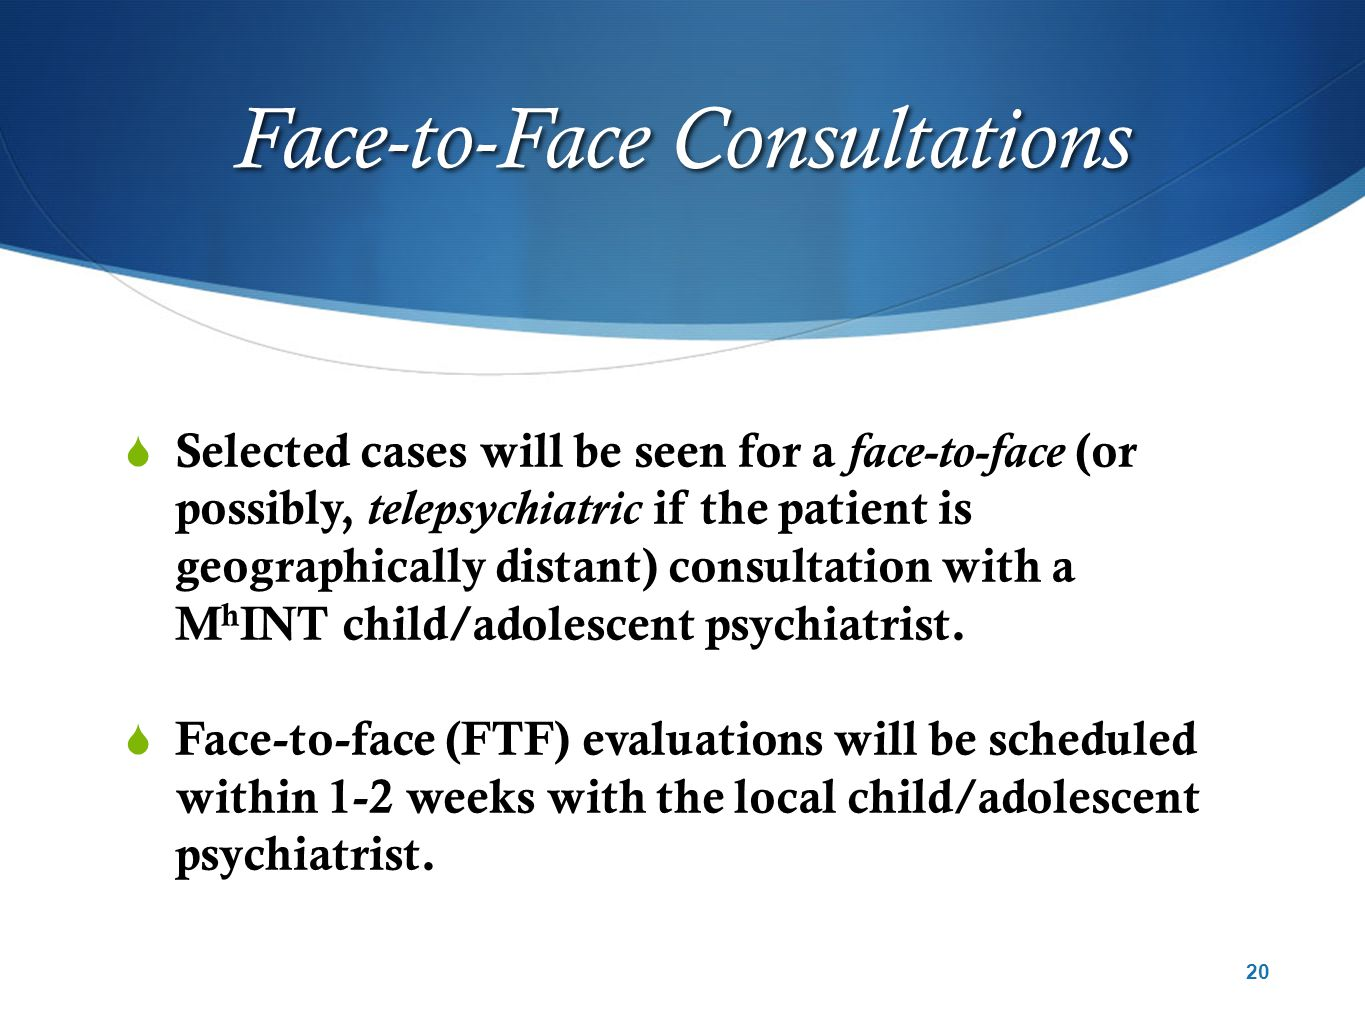  Selected cases will be seen for a face-to-face (or possibly, telepsychiatric if the patient is geographically distant) consultation with a M h INT child/adolescent psychiatrist.